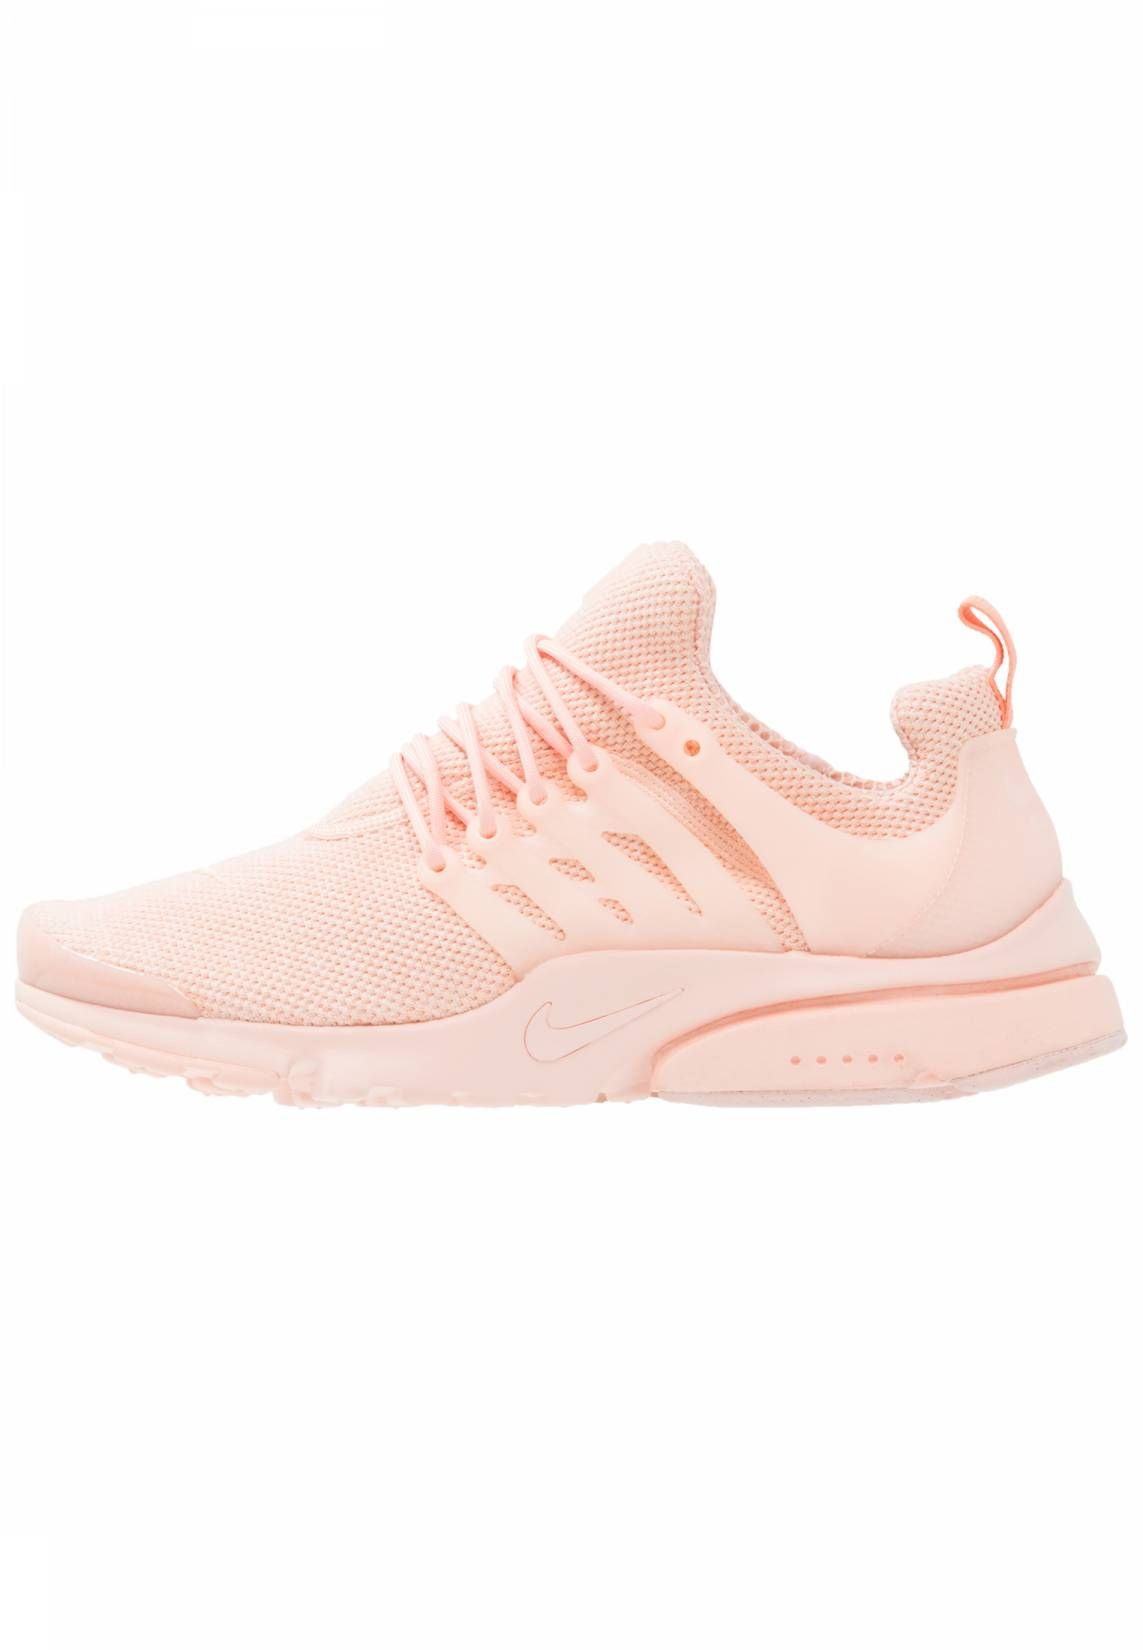 big sale b1b35 00159 Nike Sportswear. AIR PRESTO ULTRA BR - Baskets basses - arctic orange.  Semelle de